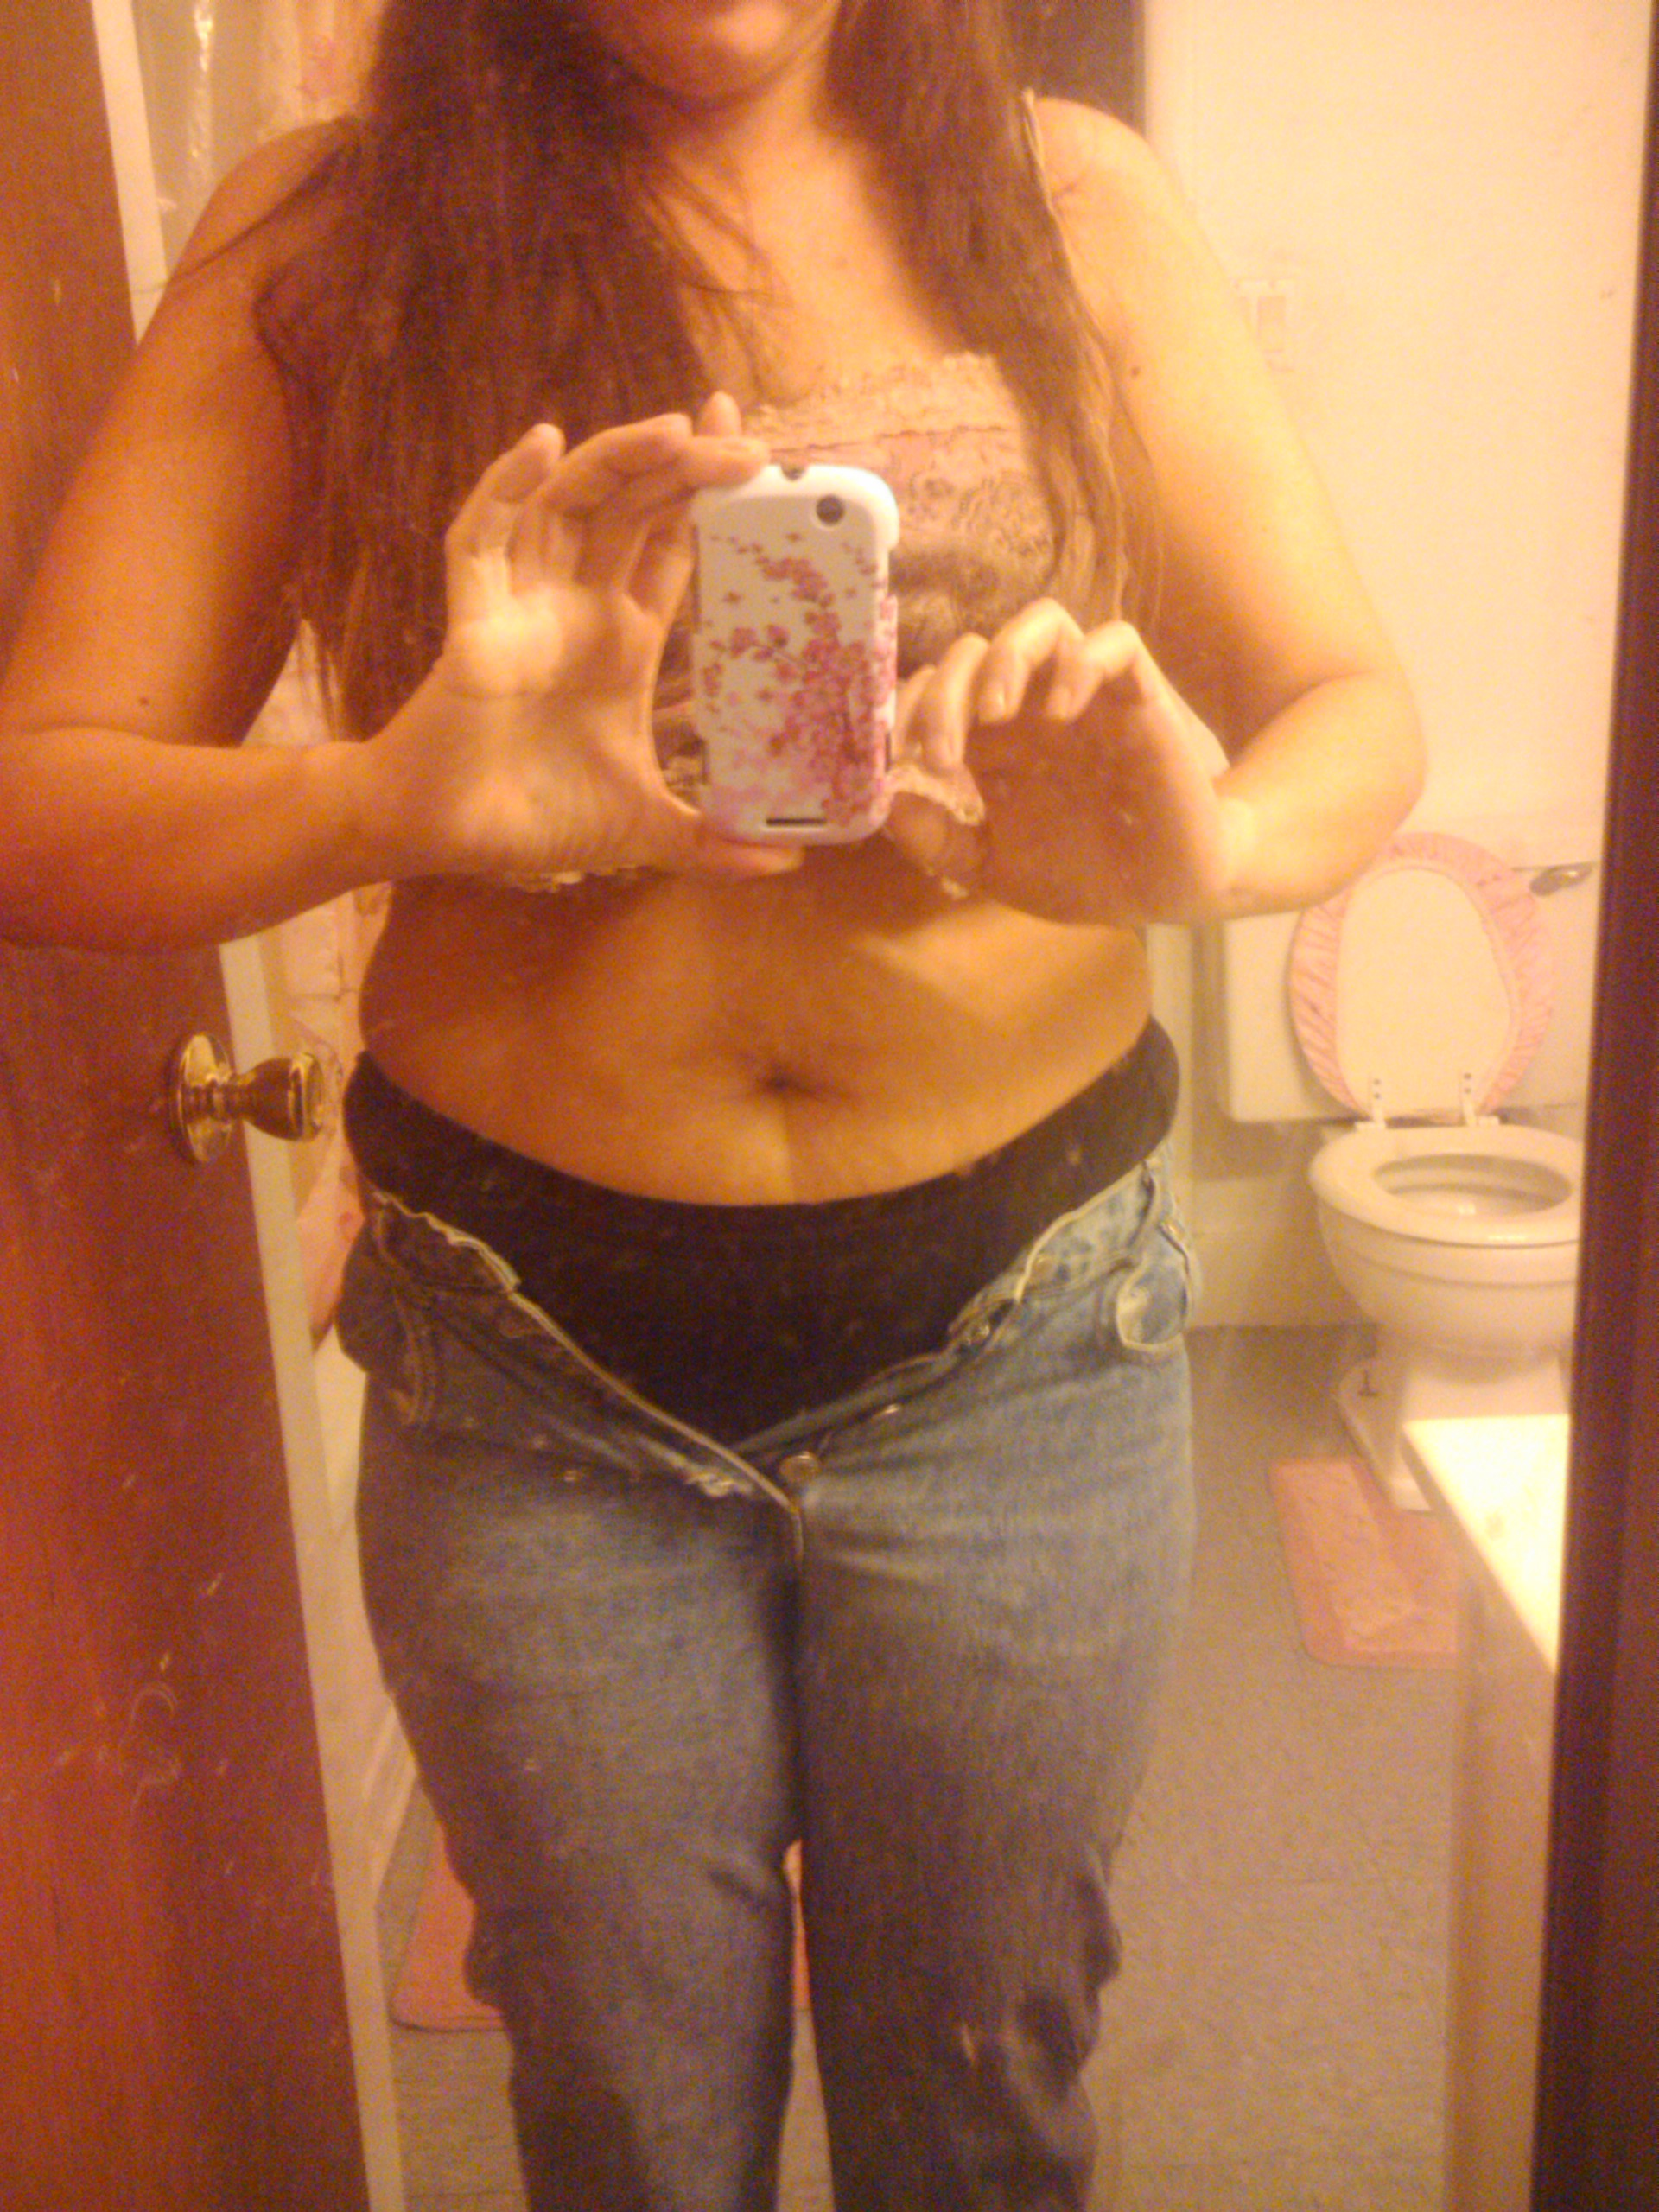 Blimp to Bombshell: RawrGirl's Weight Loss Diary-2012-09-06-20.56.18_newark_delaware_us.jpg